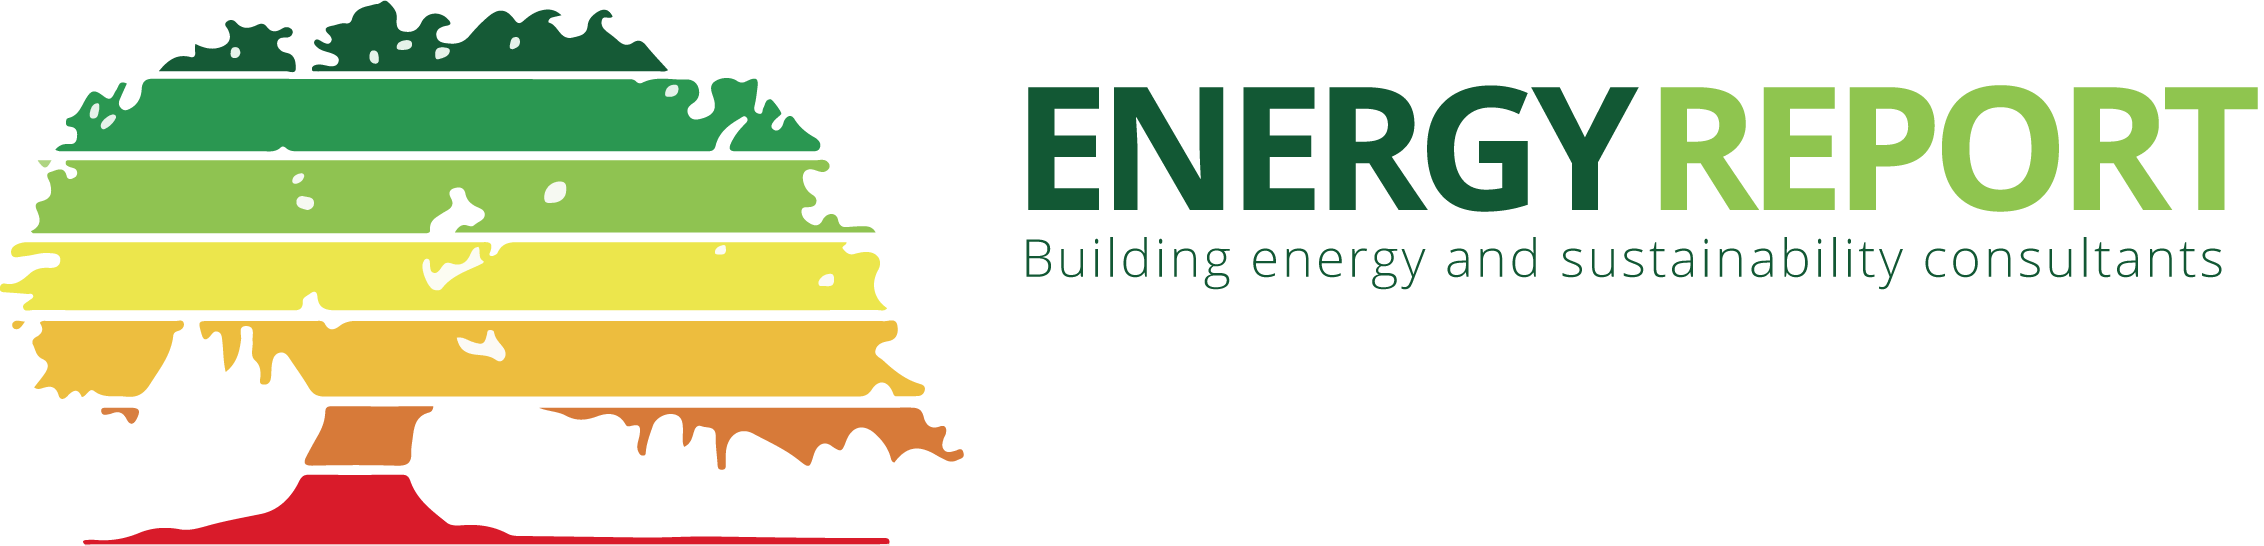 Energy Report Logo